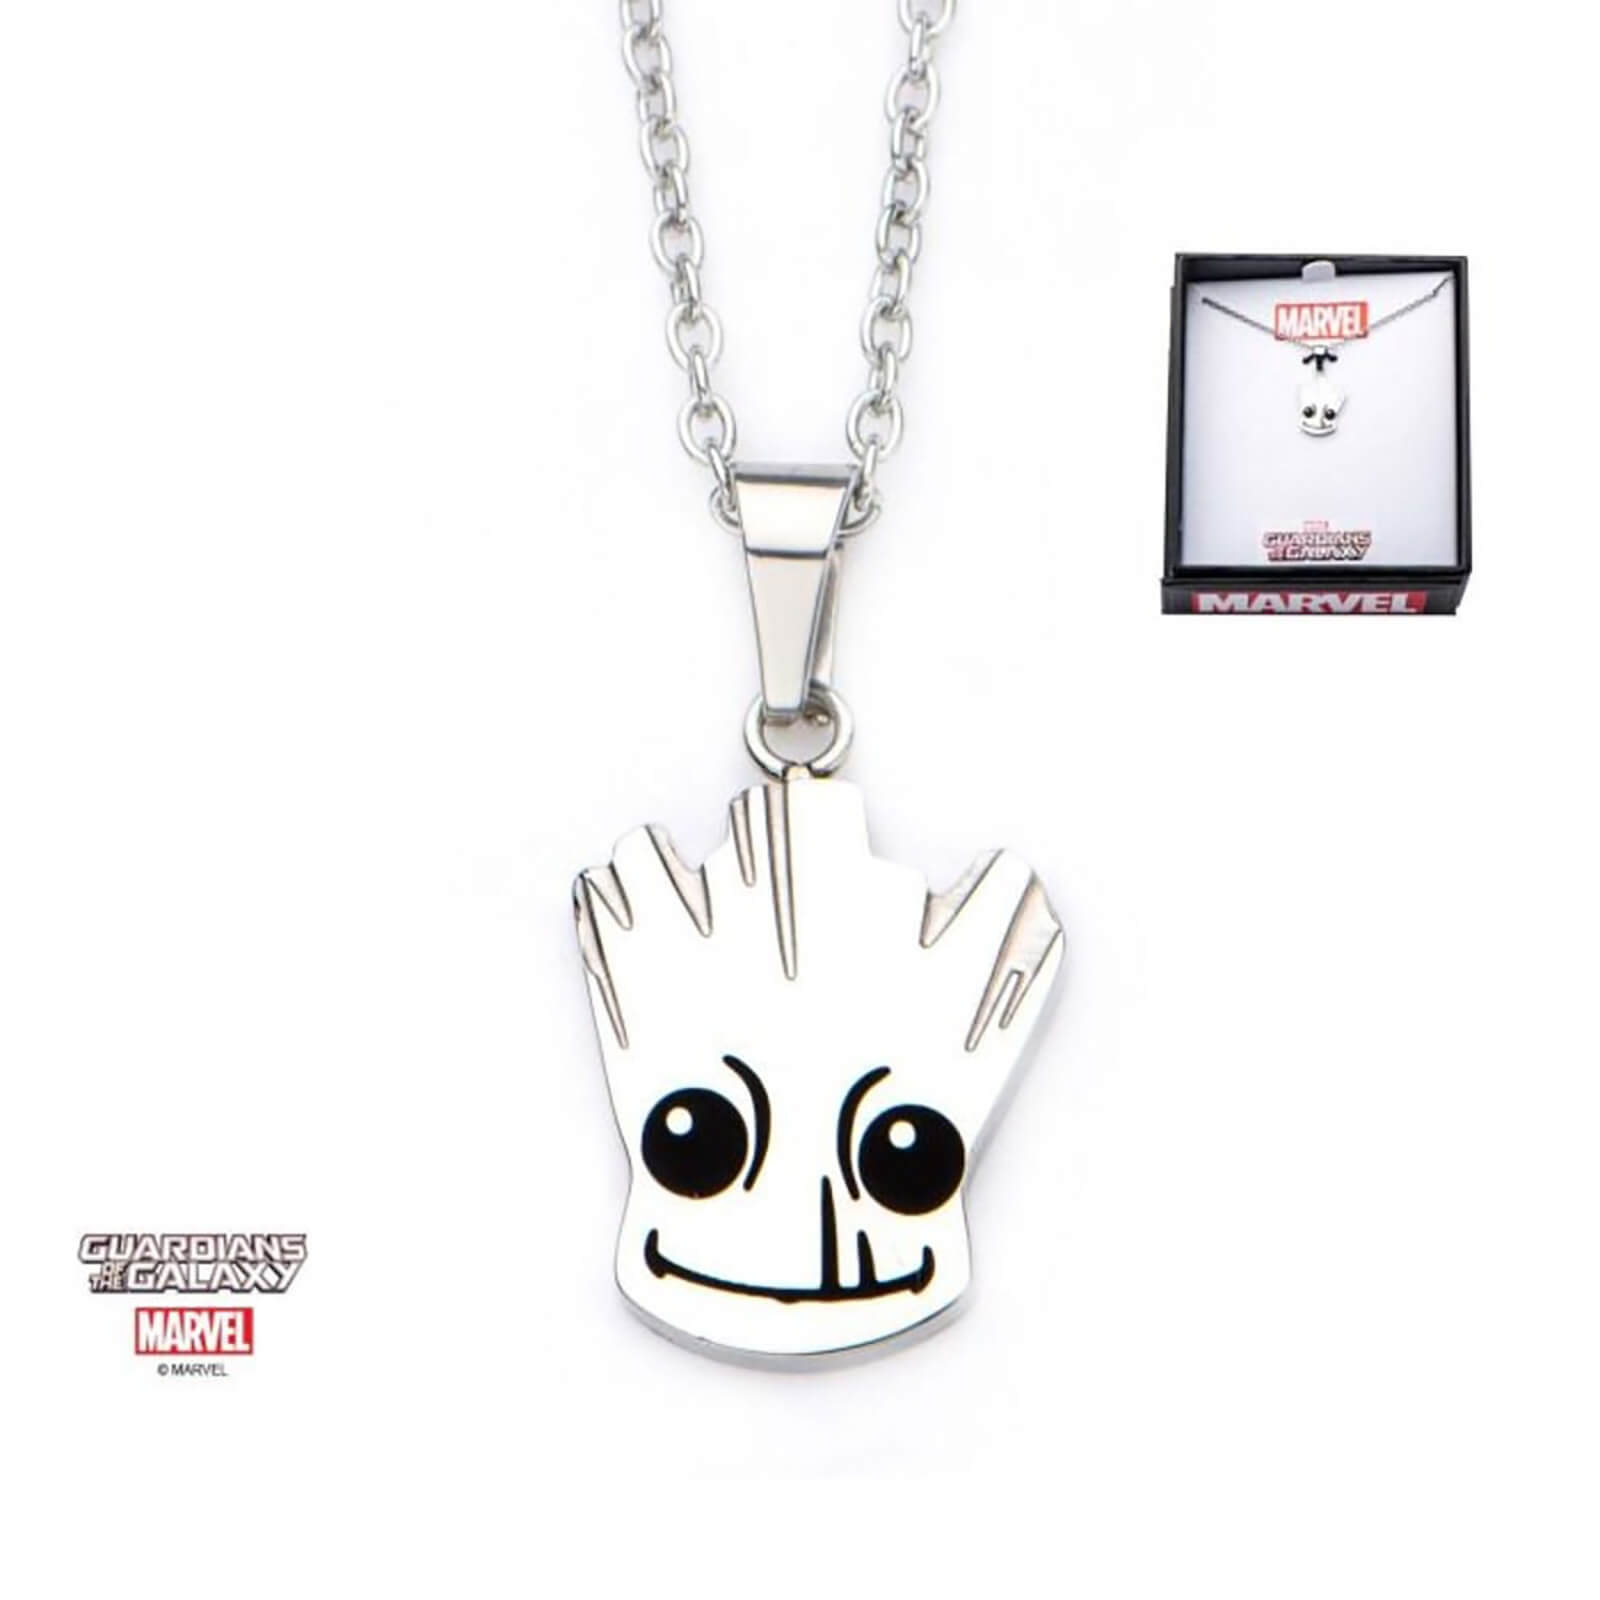 Marvel Guardians of the Galaxy Groot Pendant Necklace